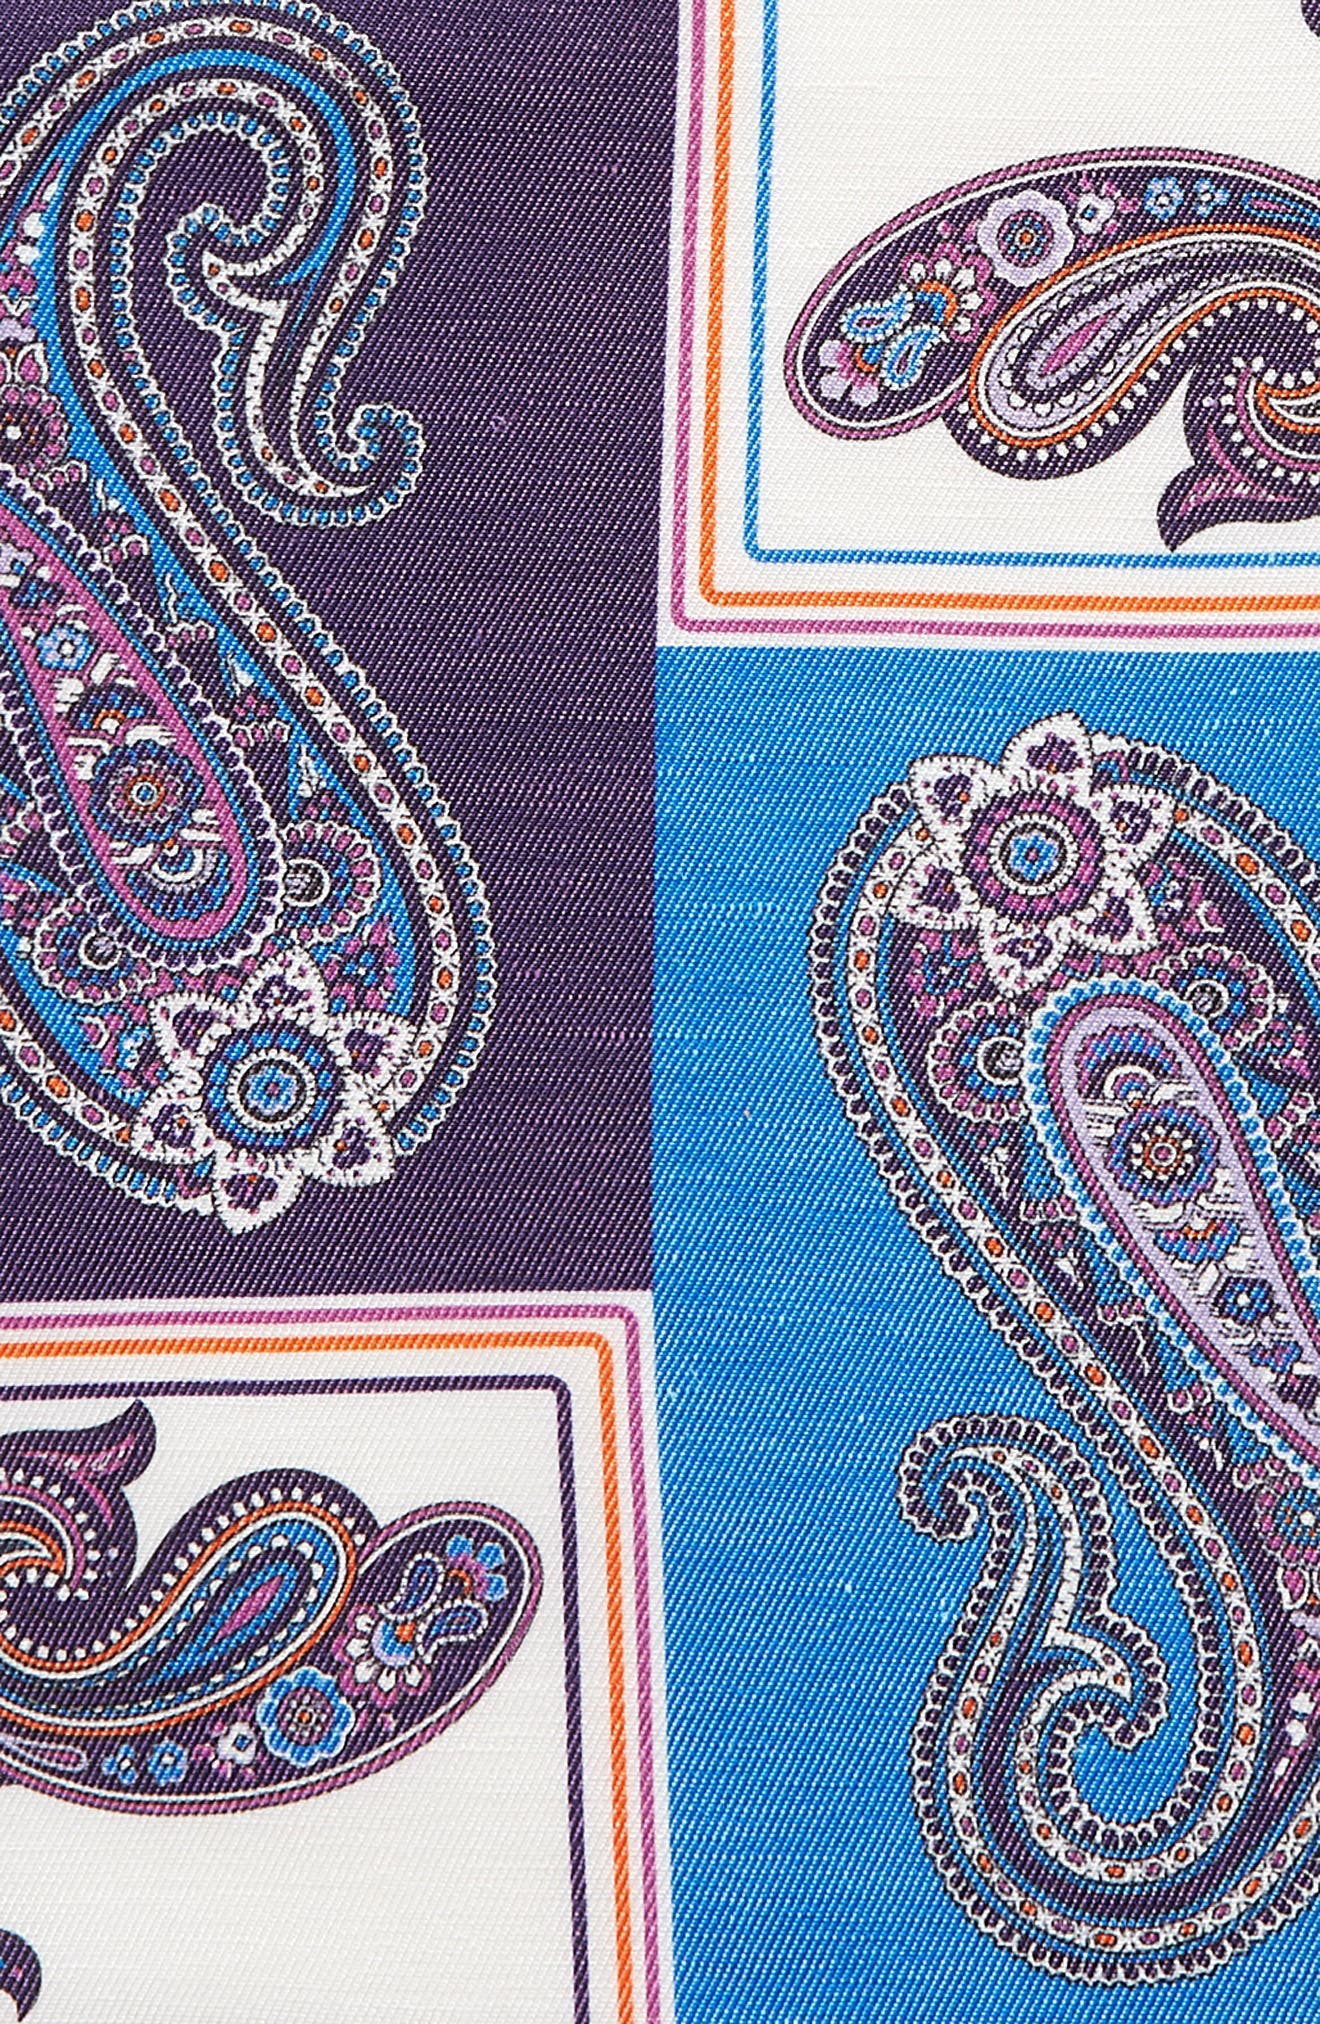 Paisley Linen & Silk Pocket Square,                             Alternate thumbnail 3, color,                             400